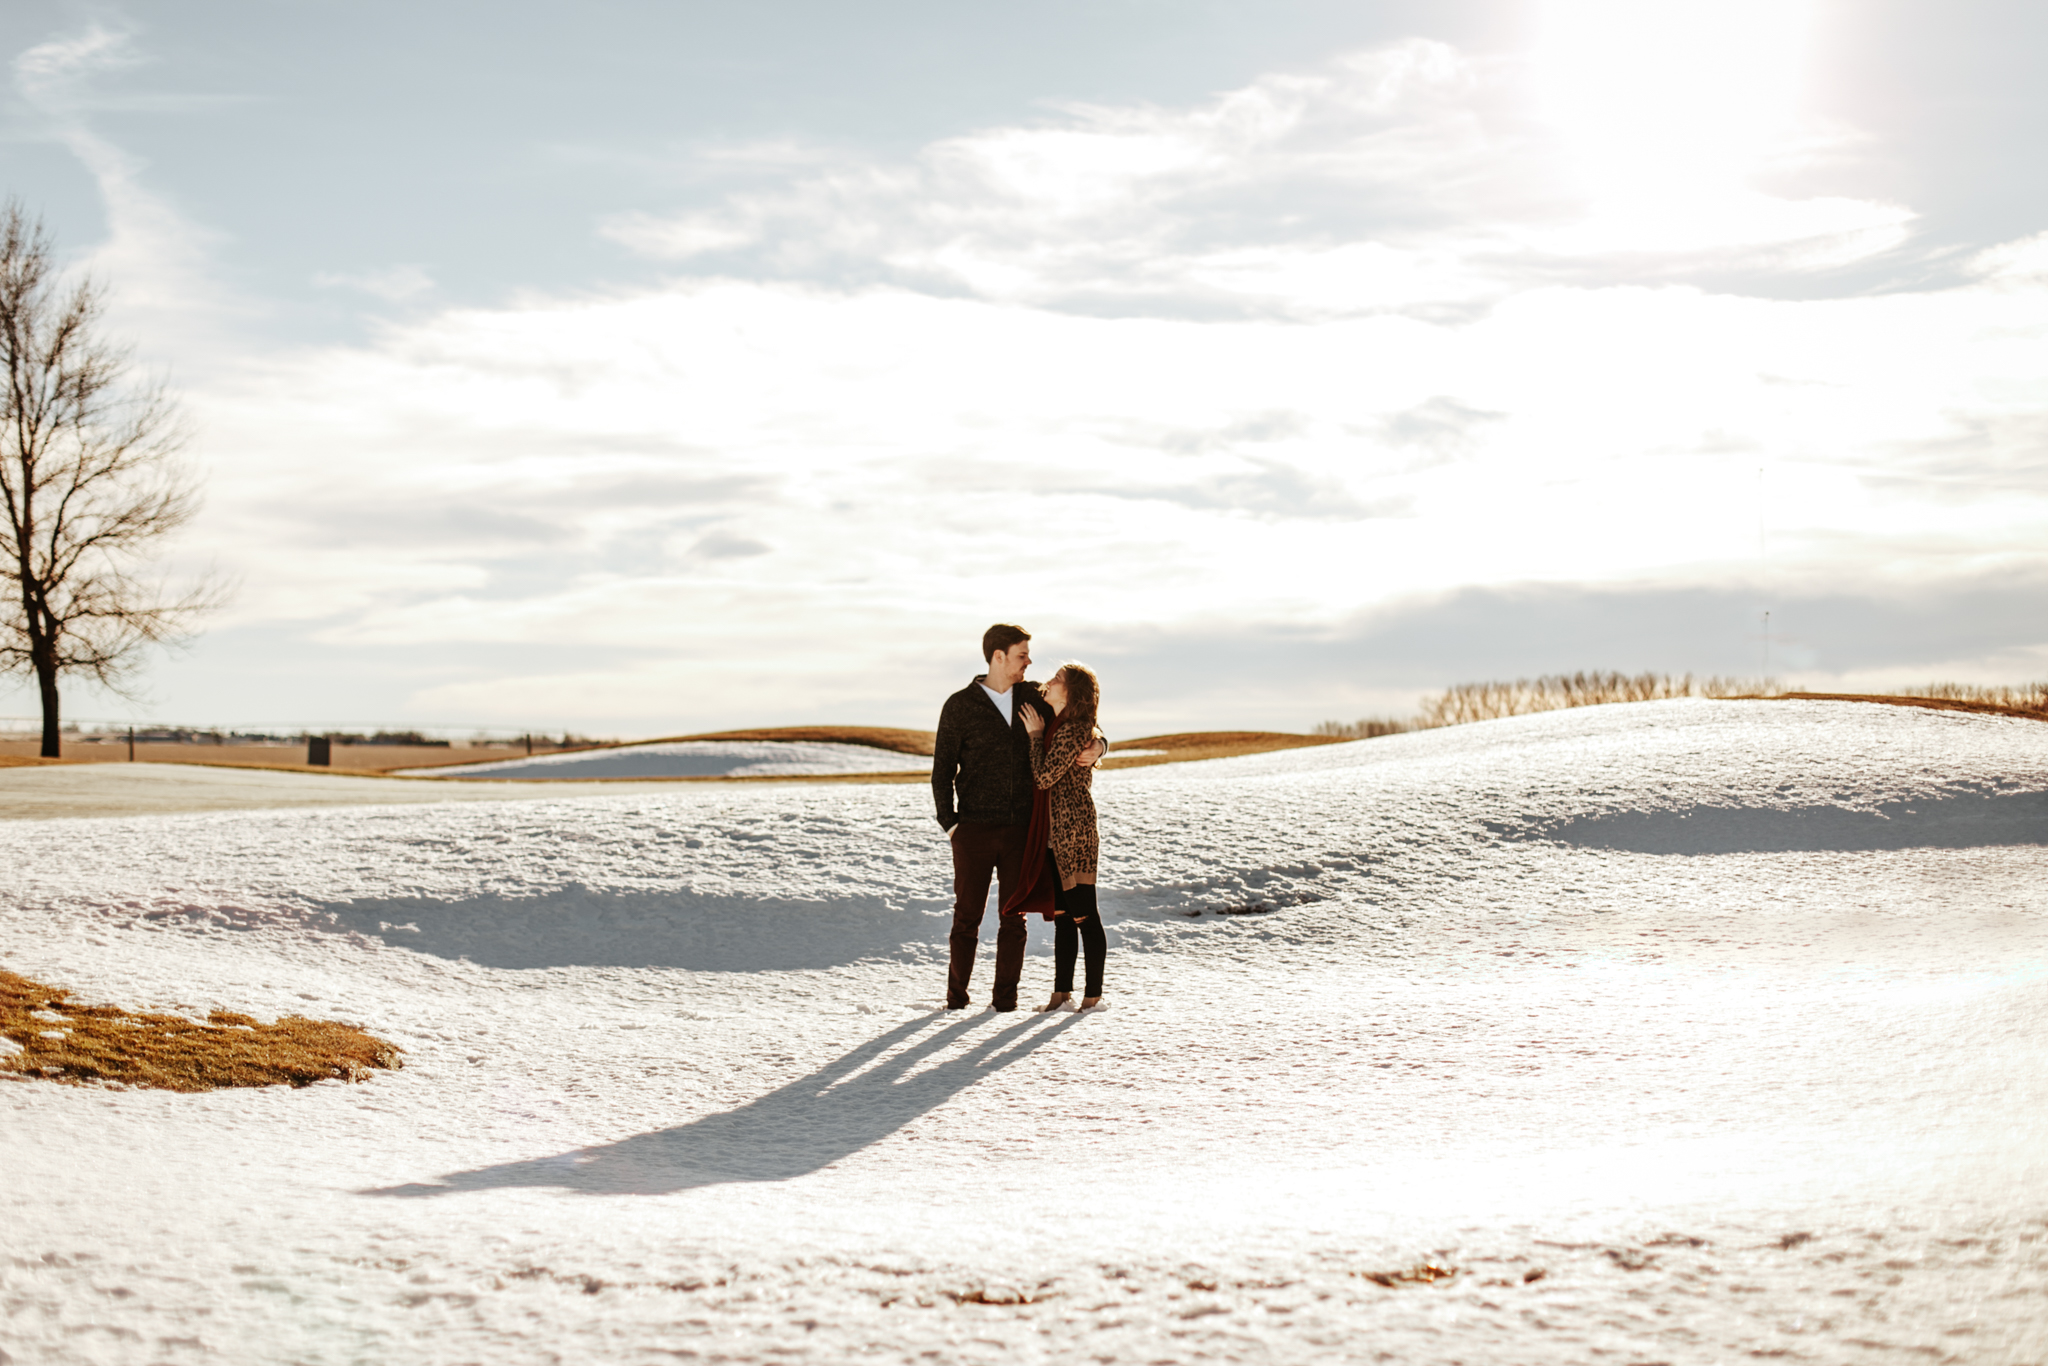 lethbridge-photographer-love-and-be-loved-photography-winter-engagement-emma-tanner-picture-image-photo-46.jpg